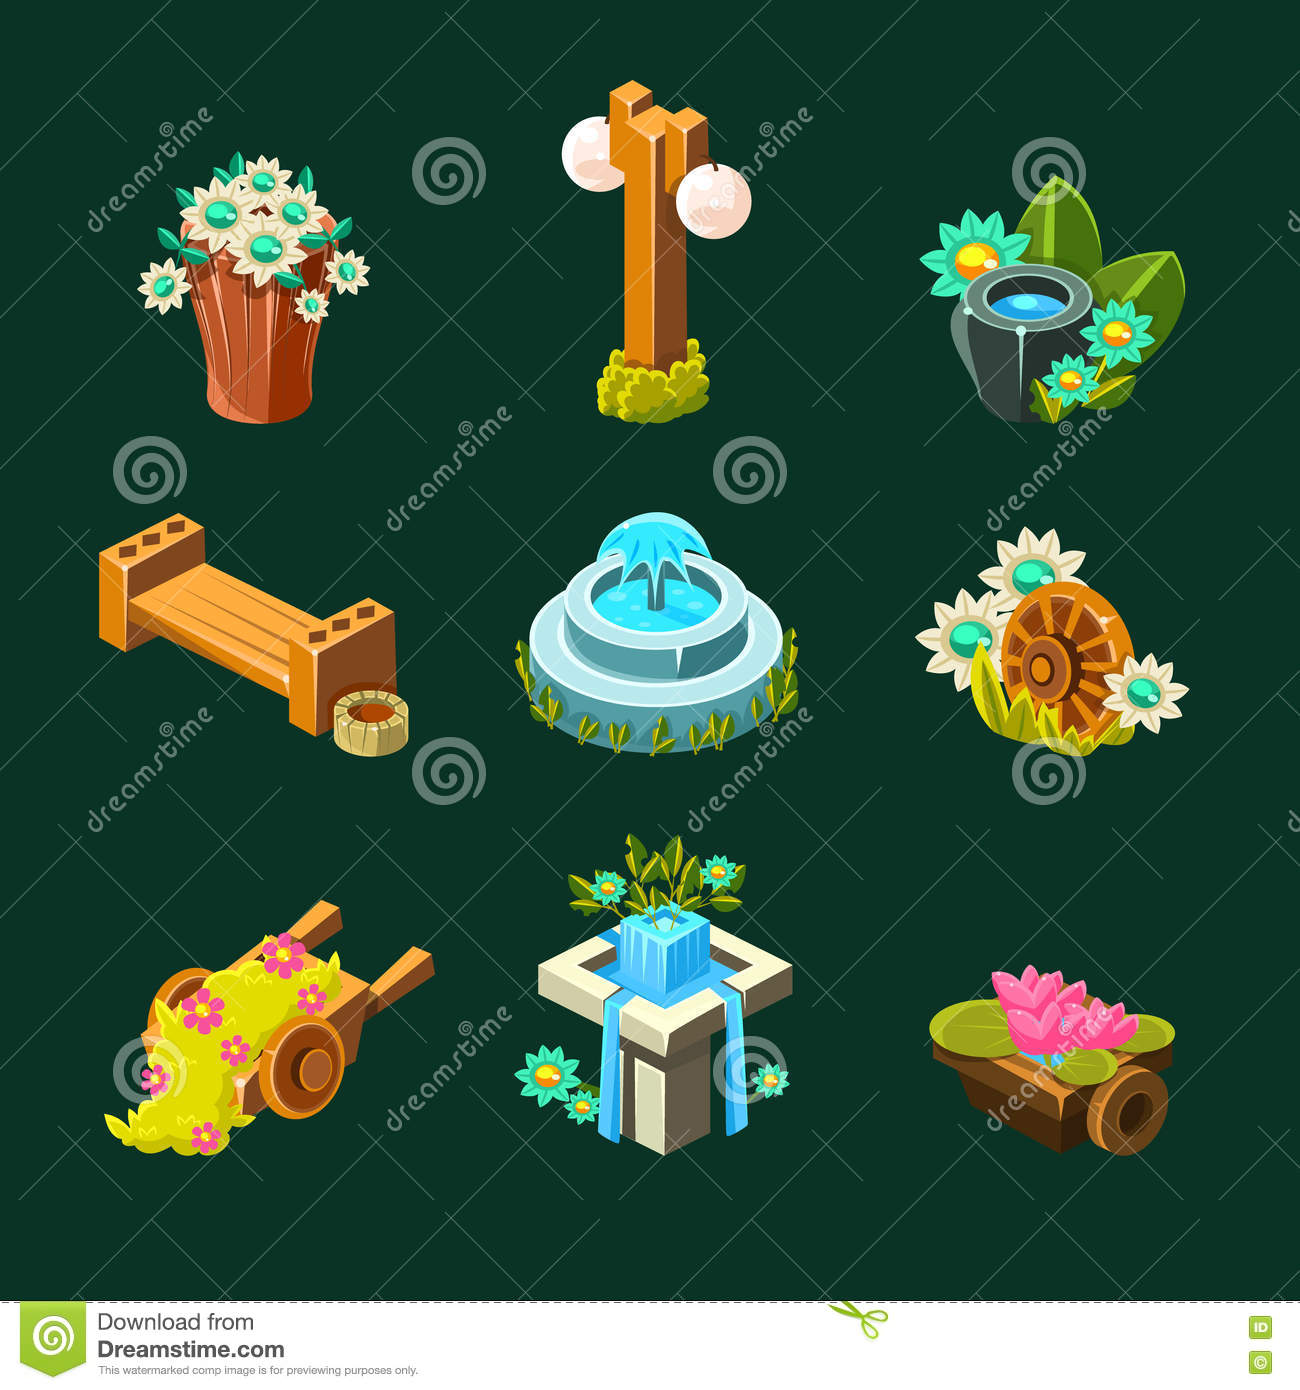 Garden Design Games Collection Enchanting Video Game Garden Decoration Collection Of Elements Stock Vector . Inspiration Design